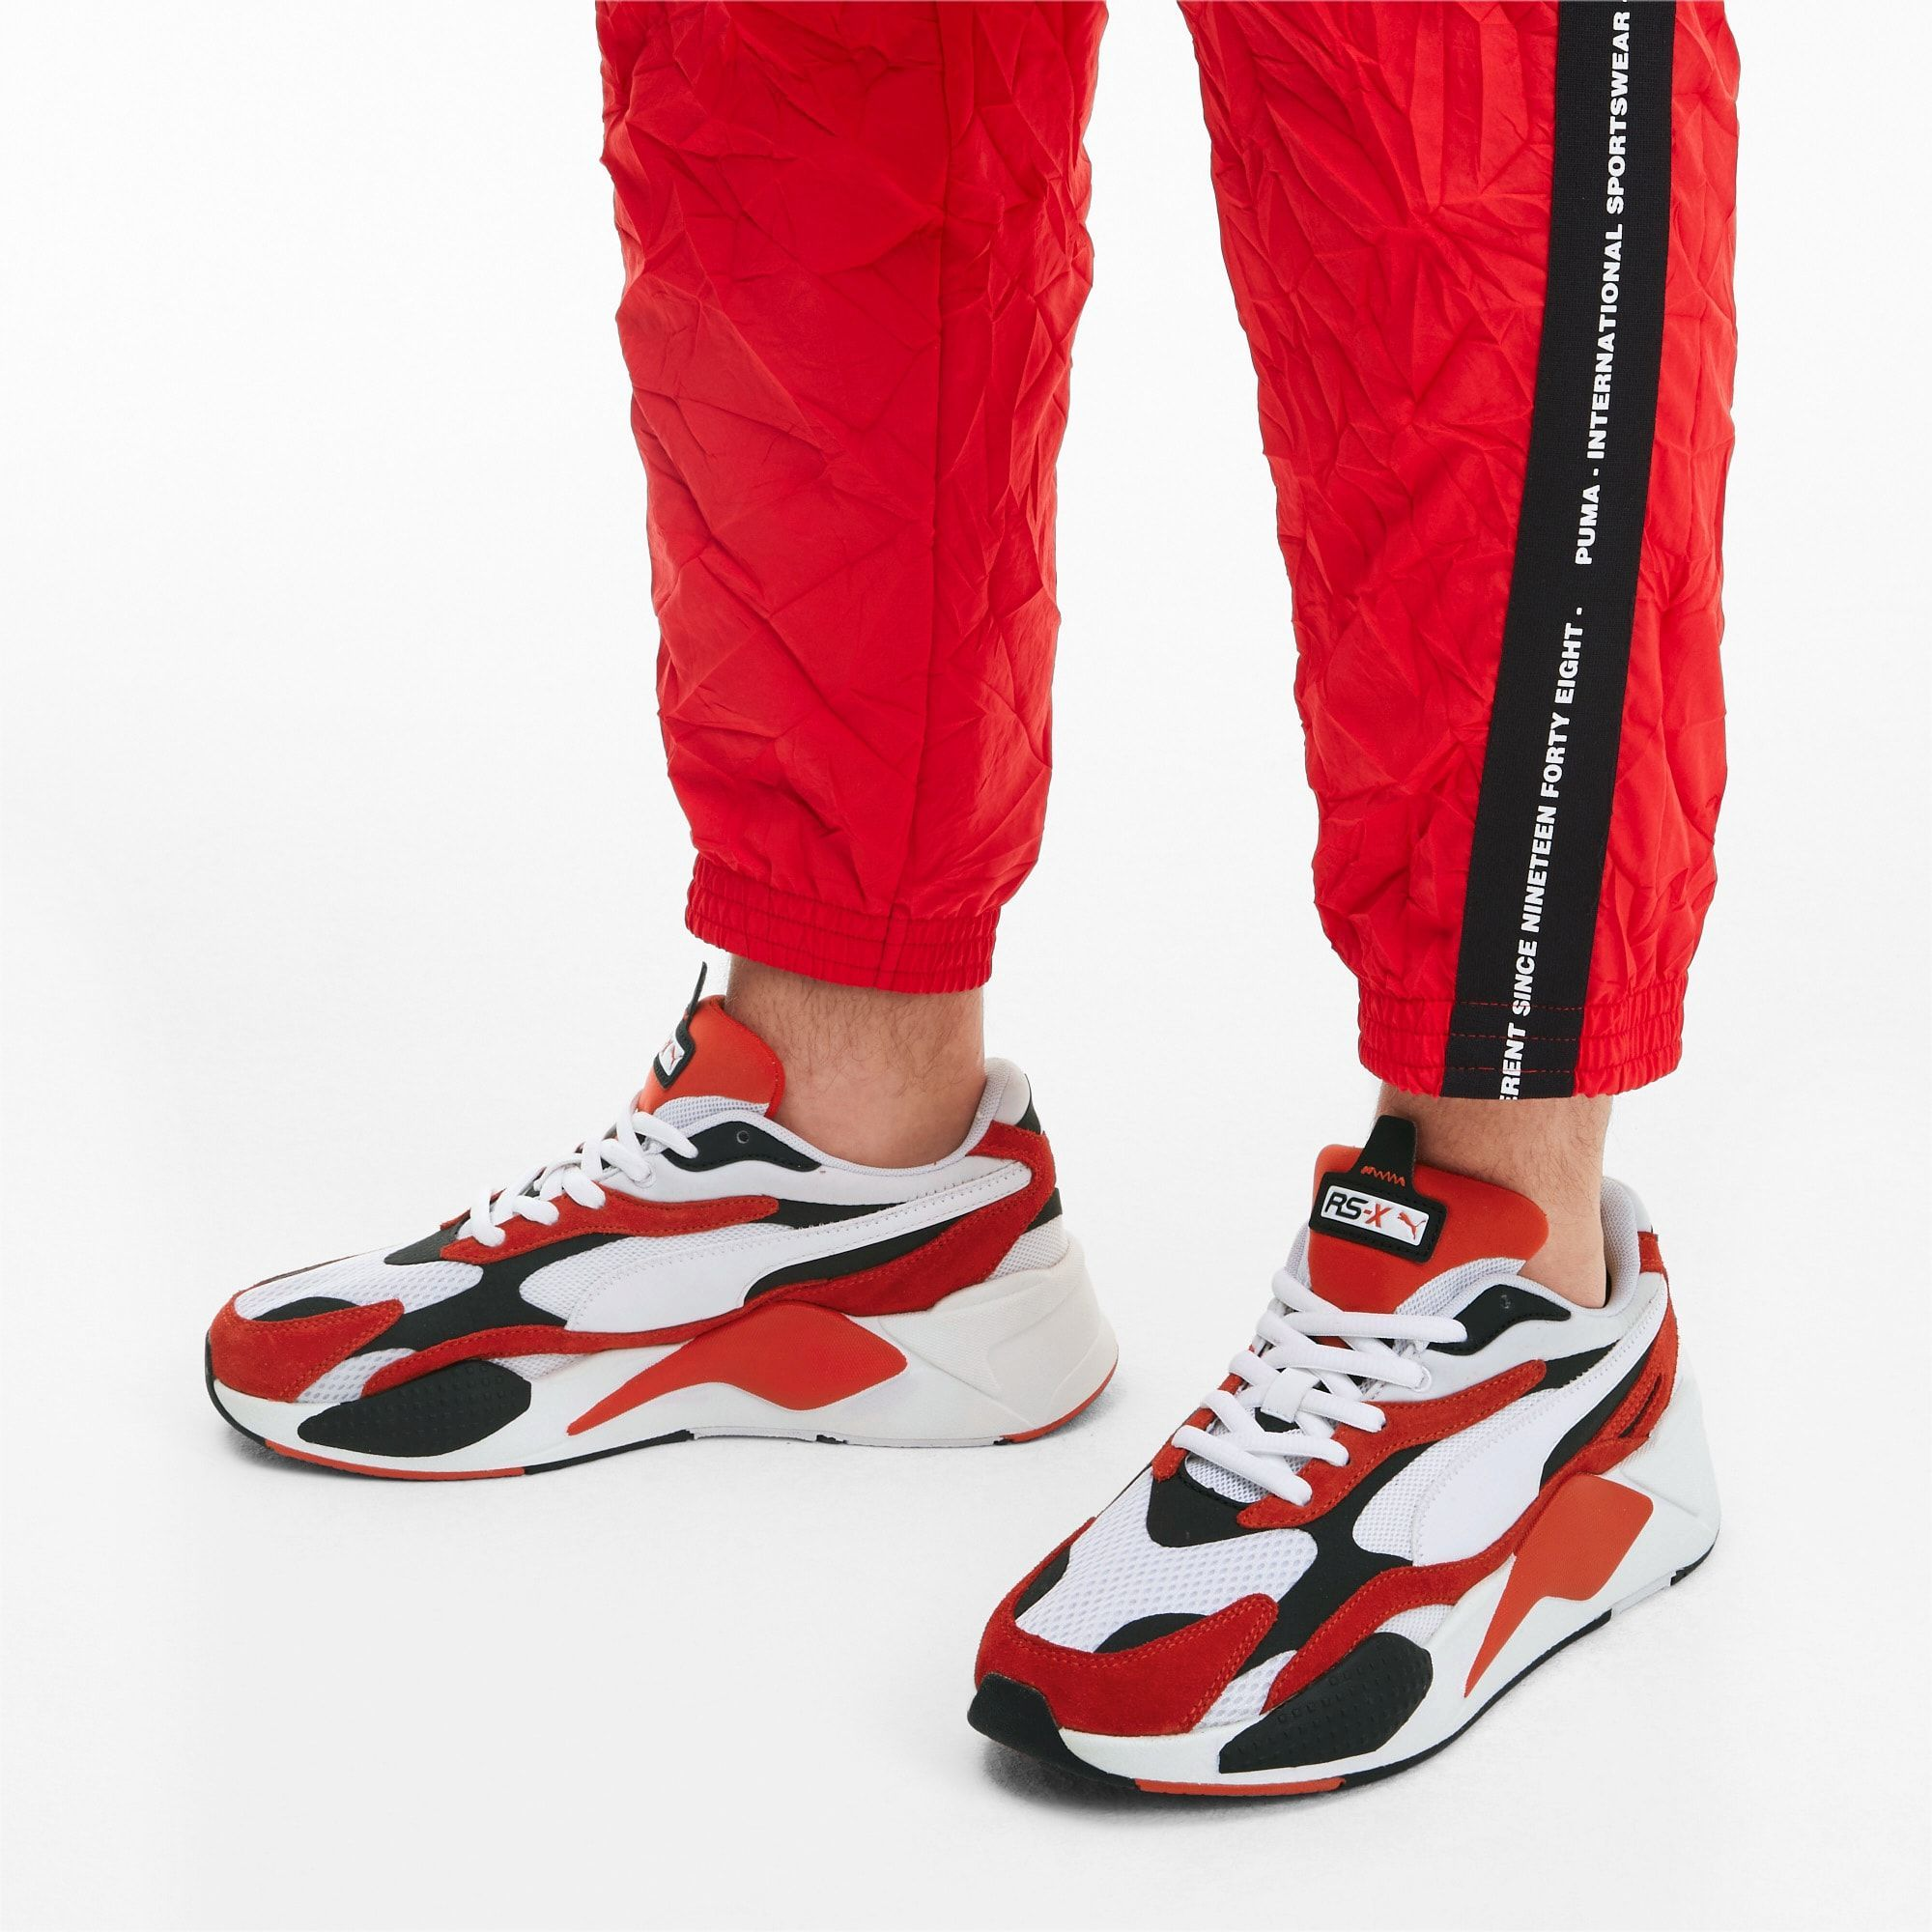 Puma Rs X Super Trainers White High Risk Red Size 10 5 Shoes In 2020 Trainers Puma Low Boots